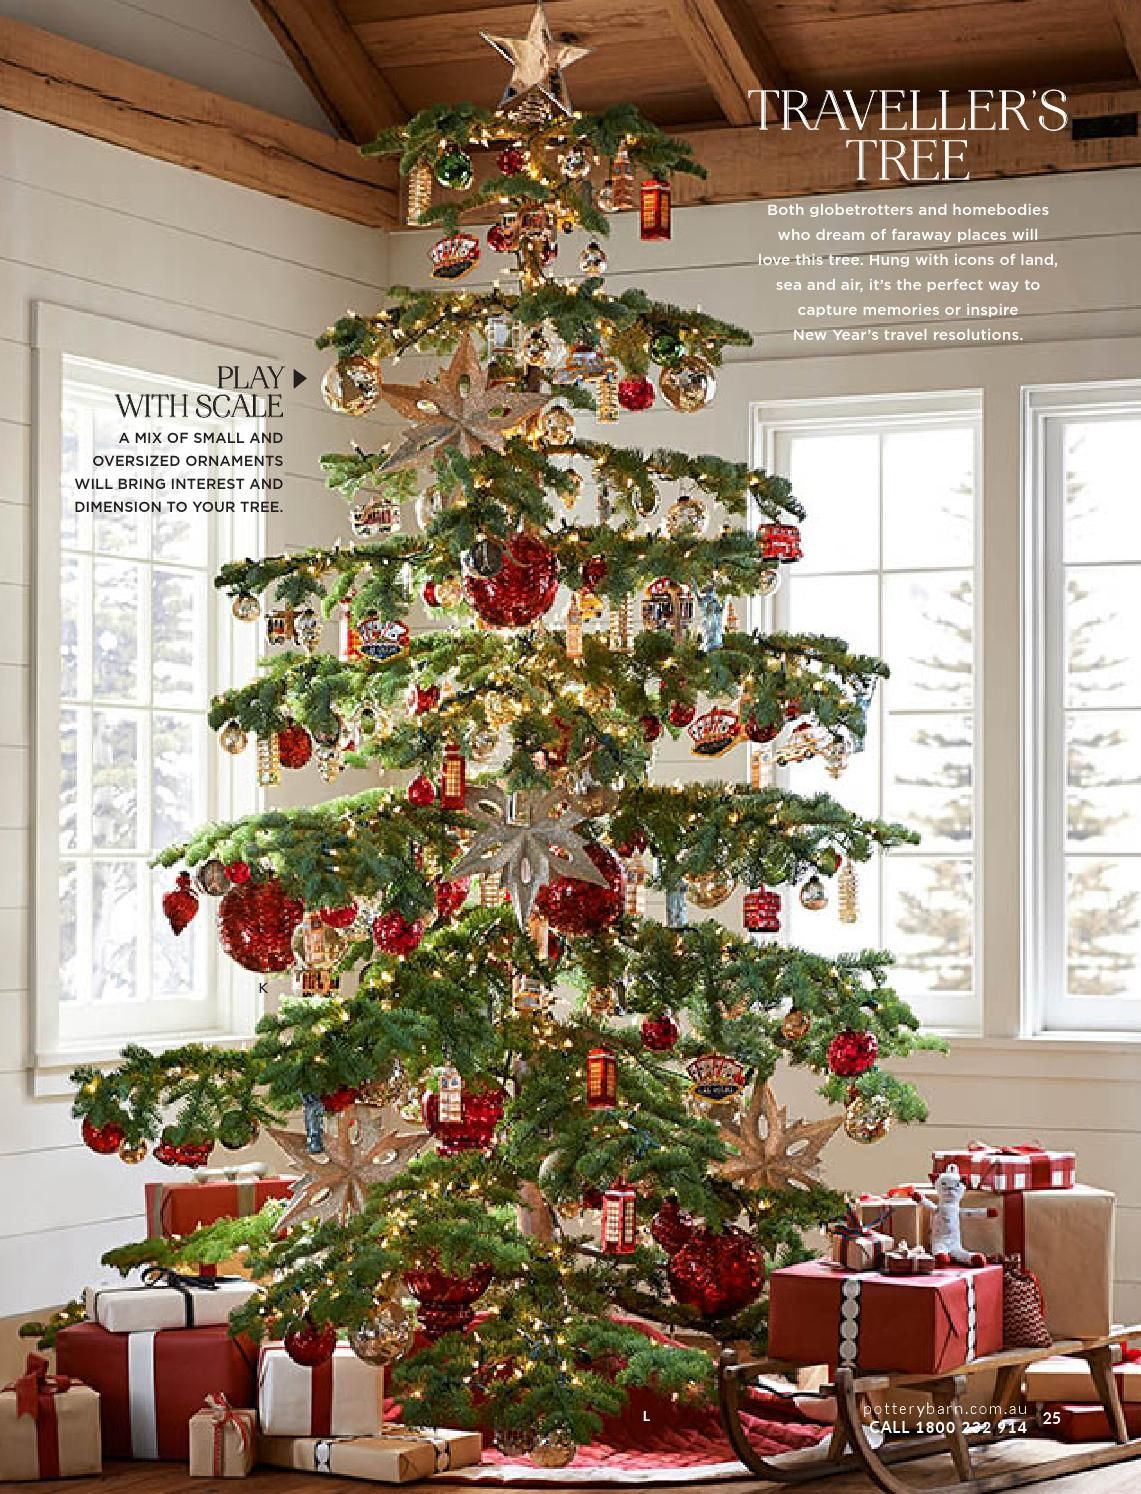 Issuu Pottery Barn Australia Christmas Catalogue 2014 By Williams Sonoma Inc Holiday Decor Christmas Holiday Decor Rustic Christmas